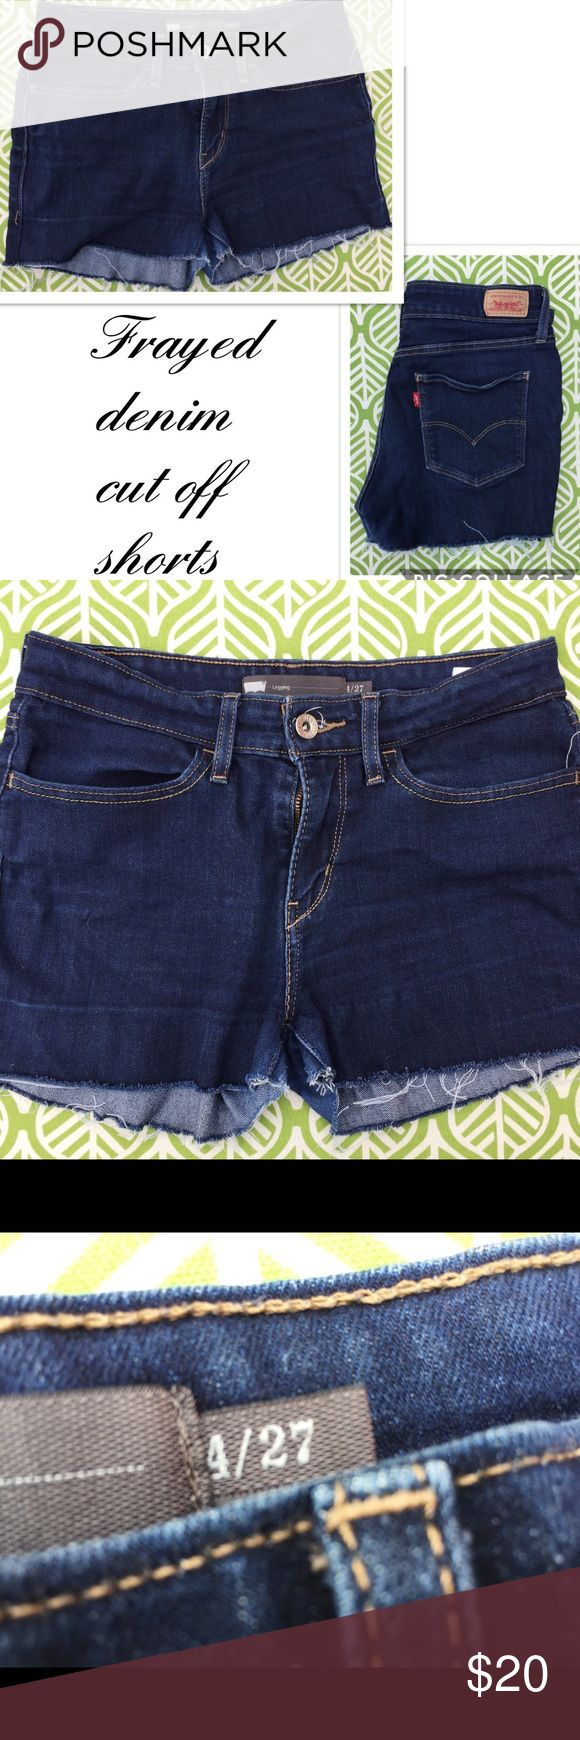 Cut off Levi jean denim shorts. Frayed Daisy dukes Gently worn ✨LIKE NEW✨ comfortable Levi jean denim cut off shorts. Perfect for festival season, warm springs days and hot summer nights☀️ 🌴 Levi's Shorts Jean Shorts